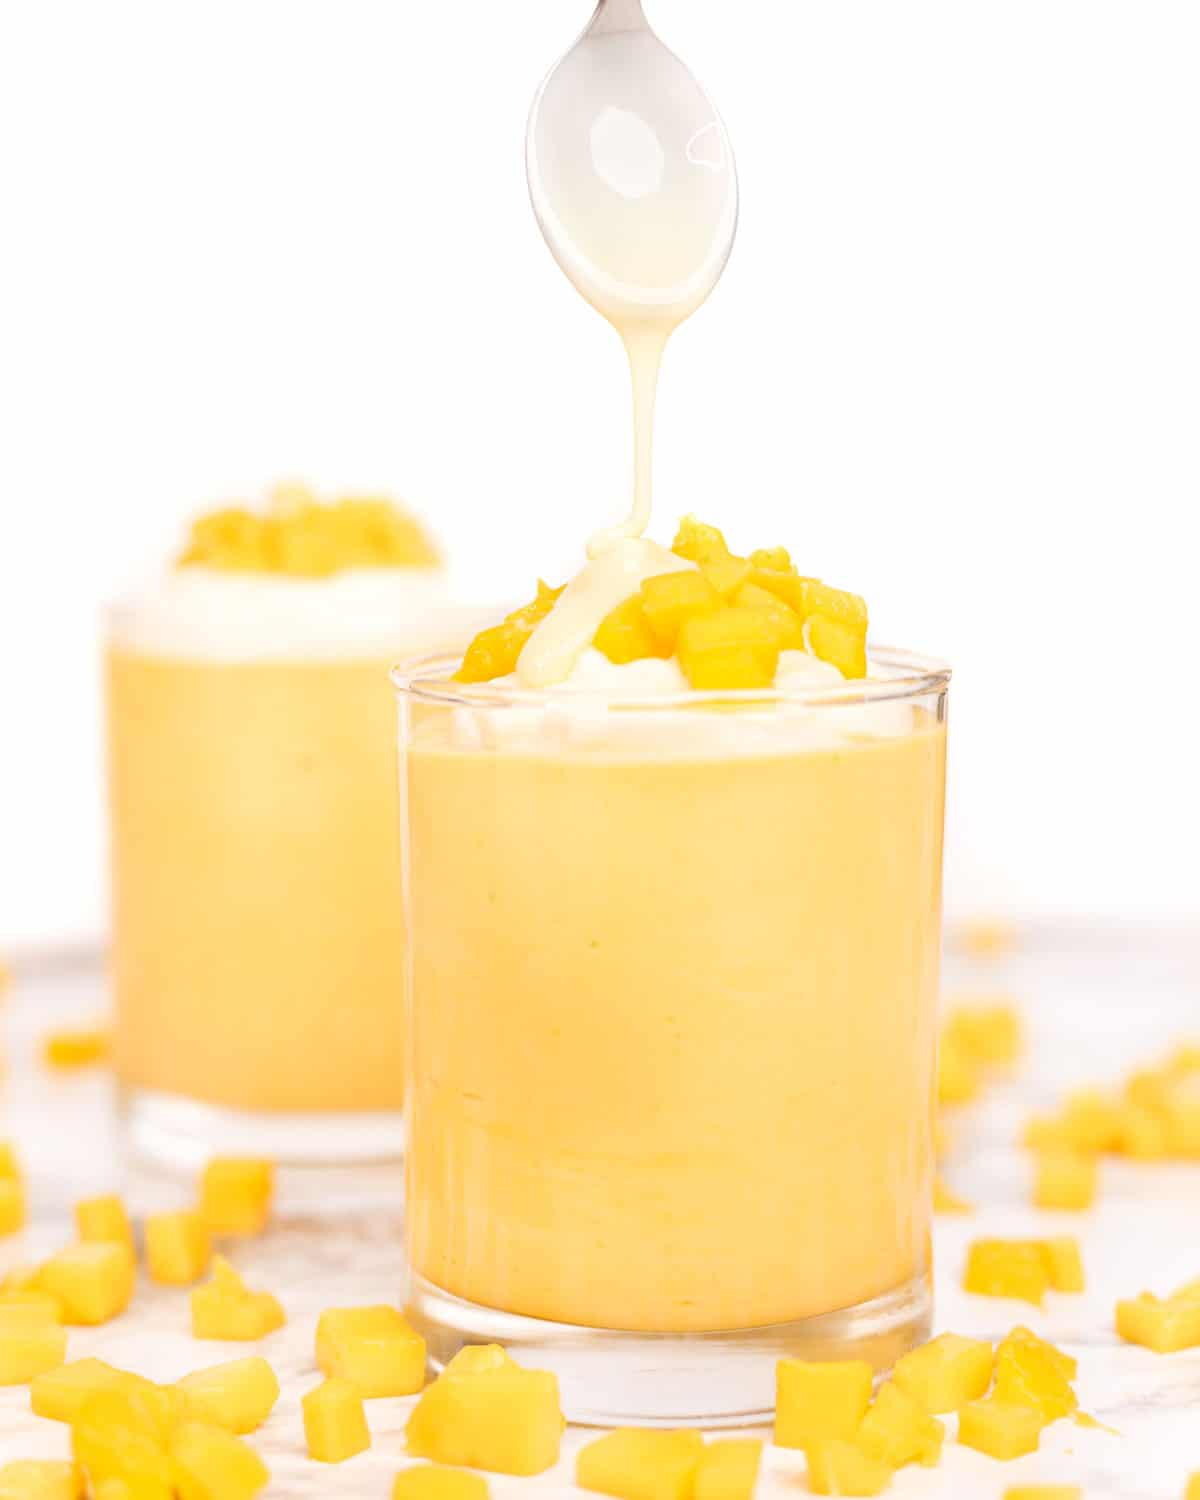 a spoon drizzling condensed milk over a glass of mango mousse